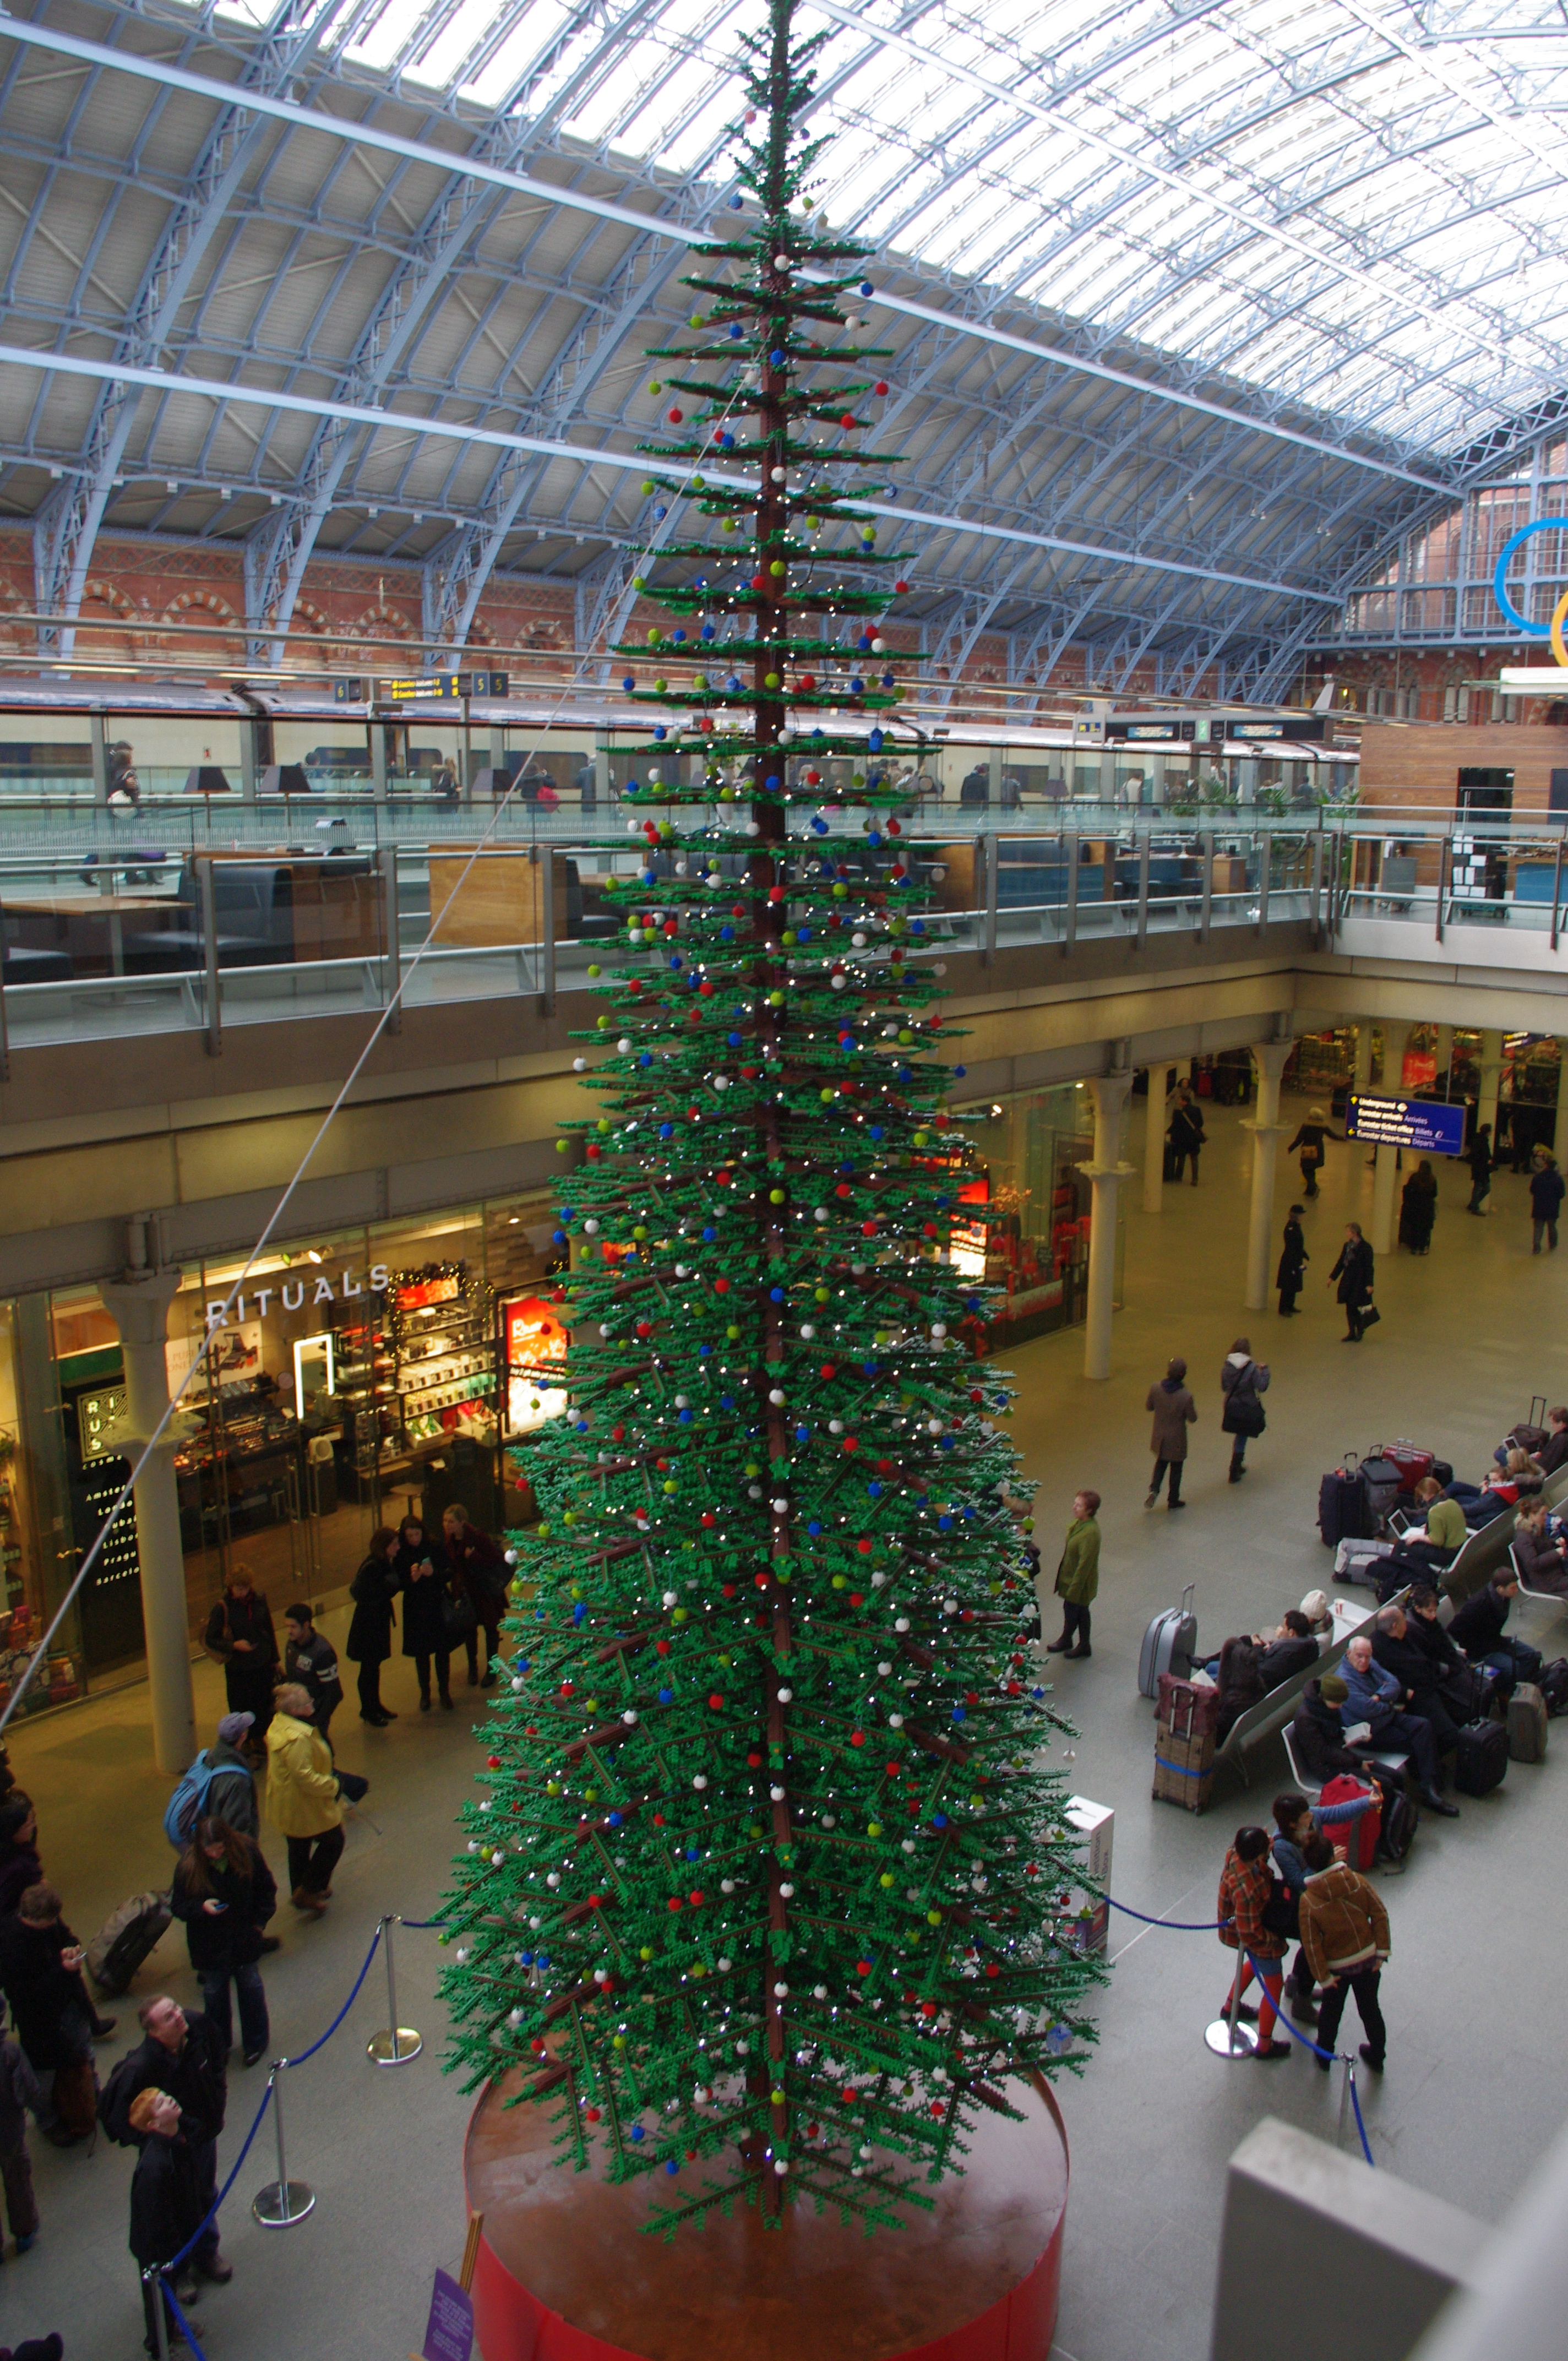 Christmas 2012: The Most Tree-mendous Yet